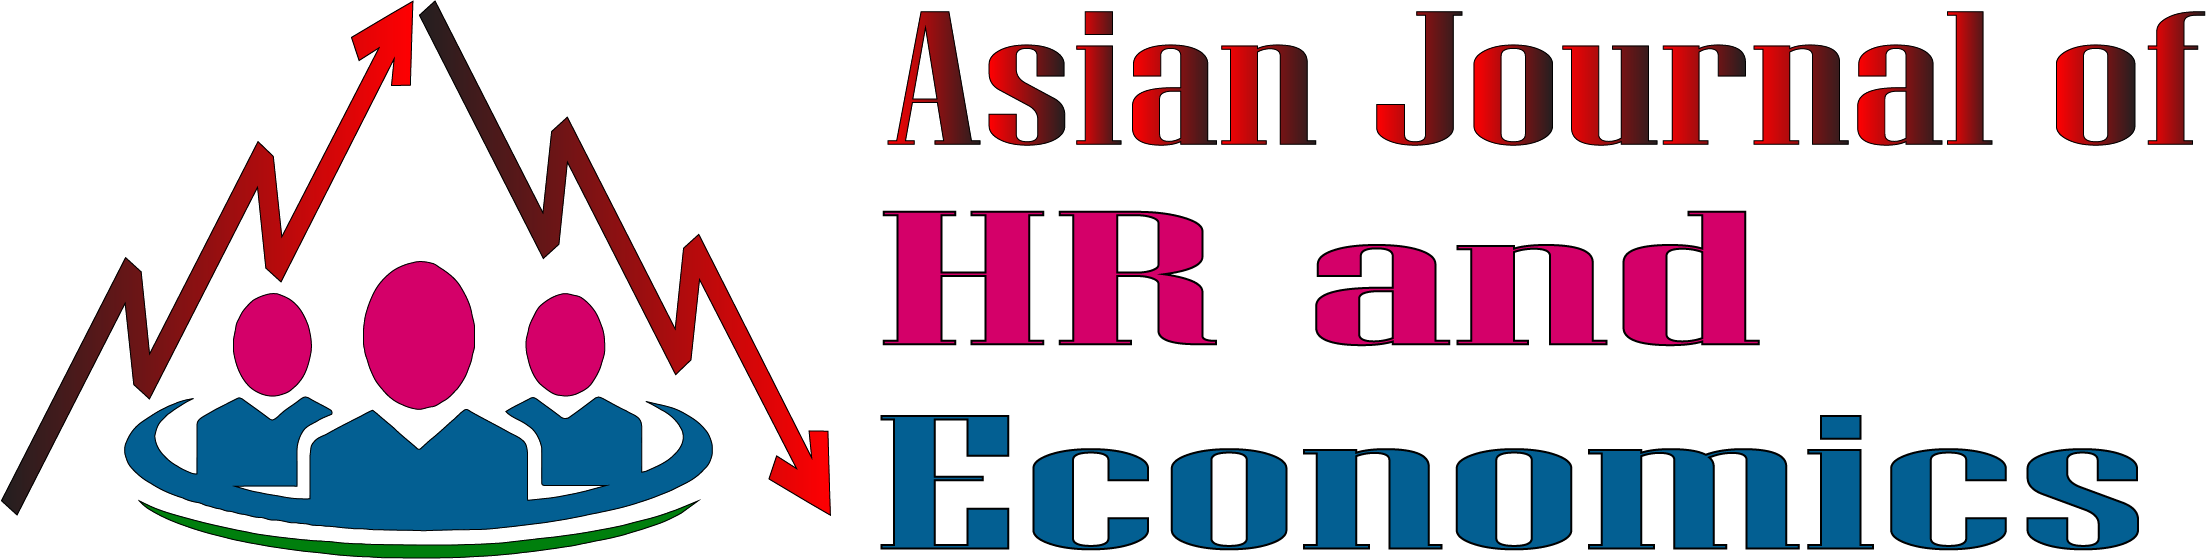 Asian Journal of HR and Economics (AJHRE)